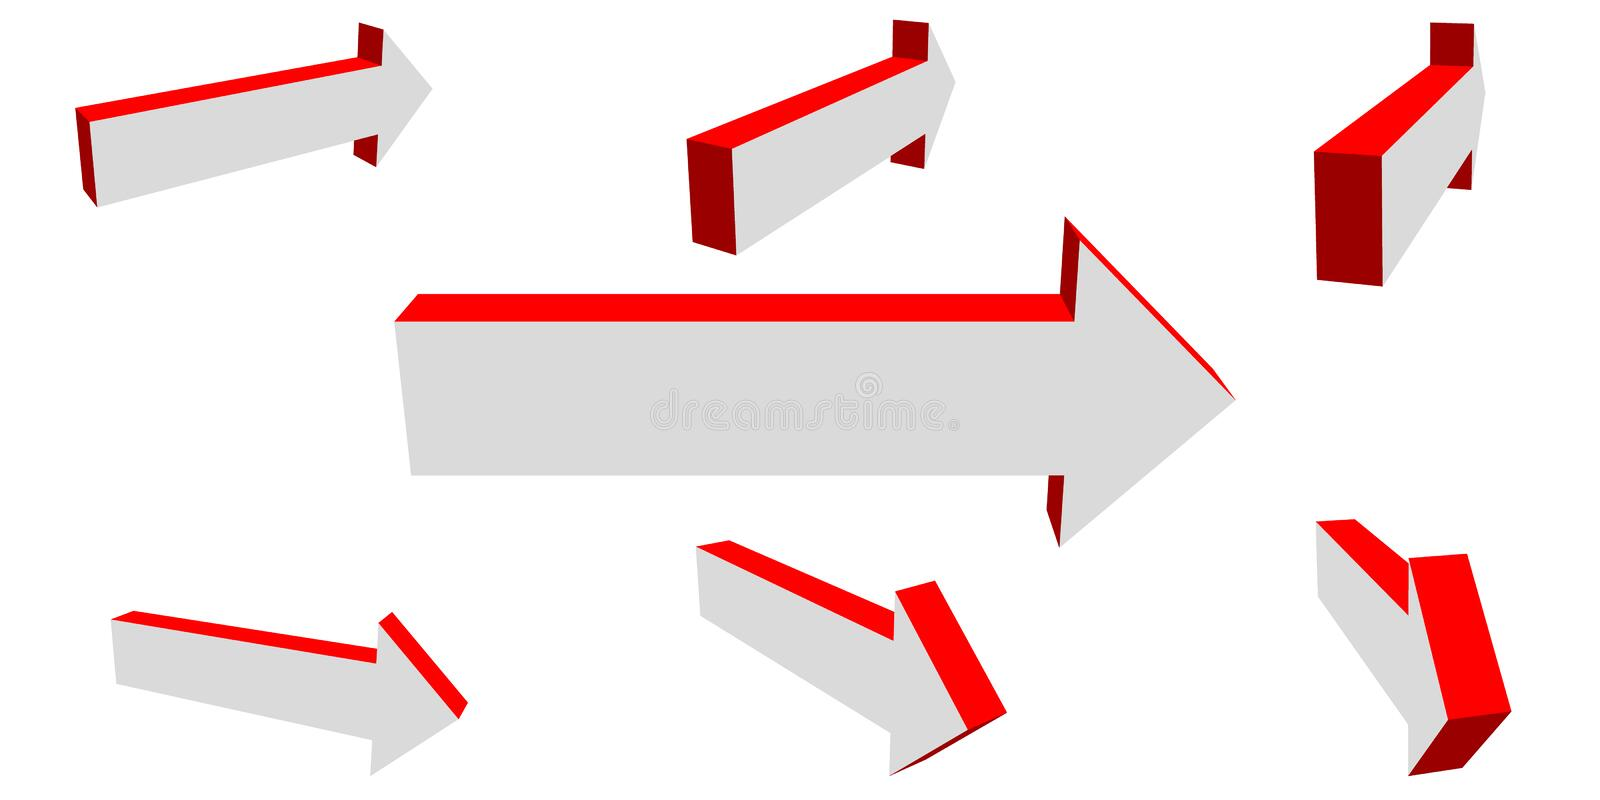 3d Arrow sign set. Isolated on white background. Vector illustration royalty free illustration